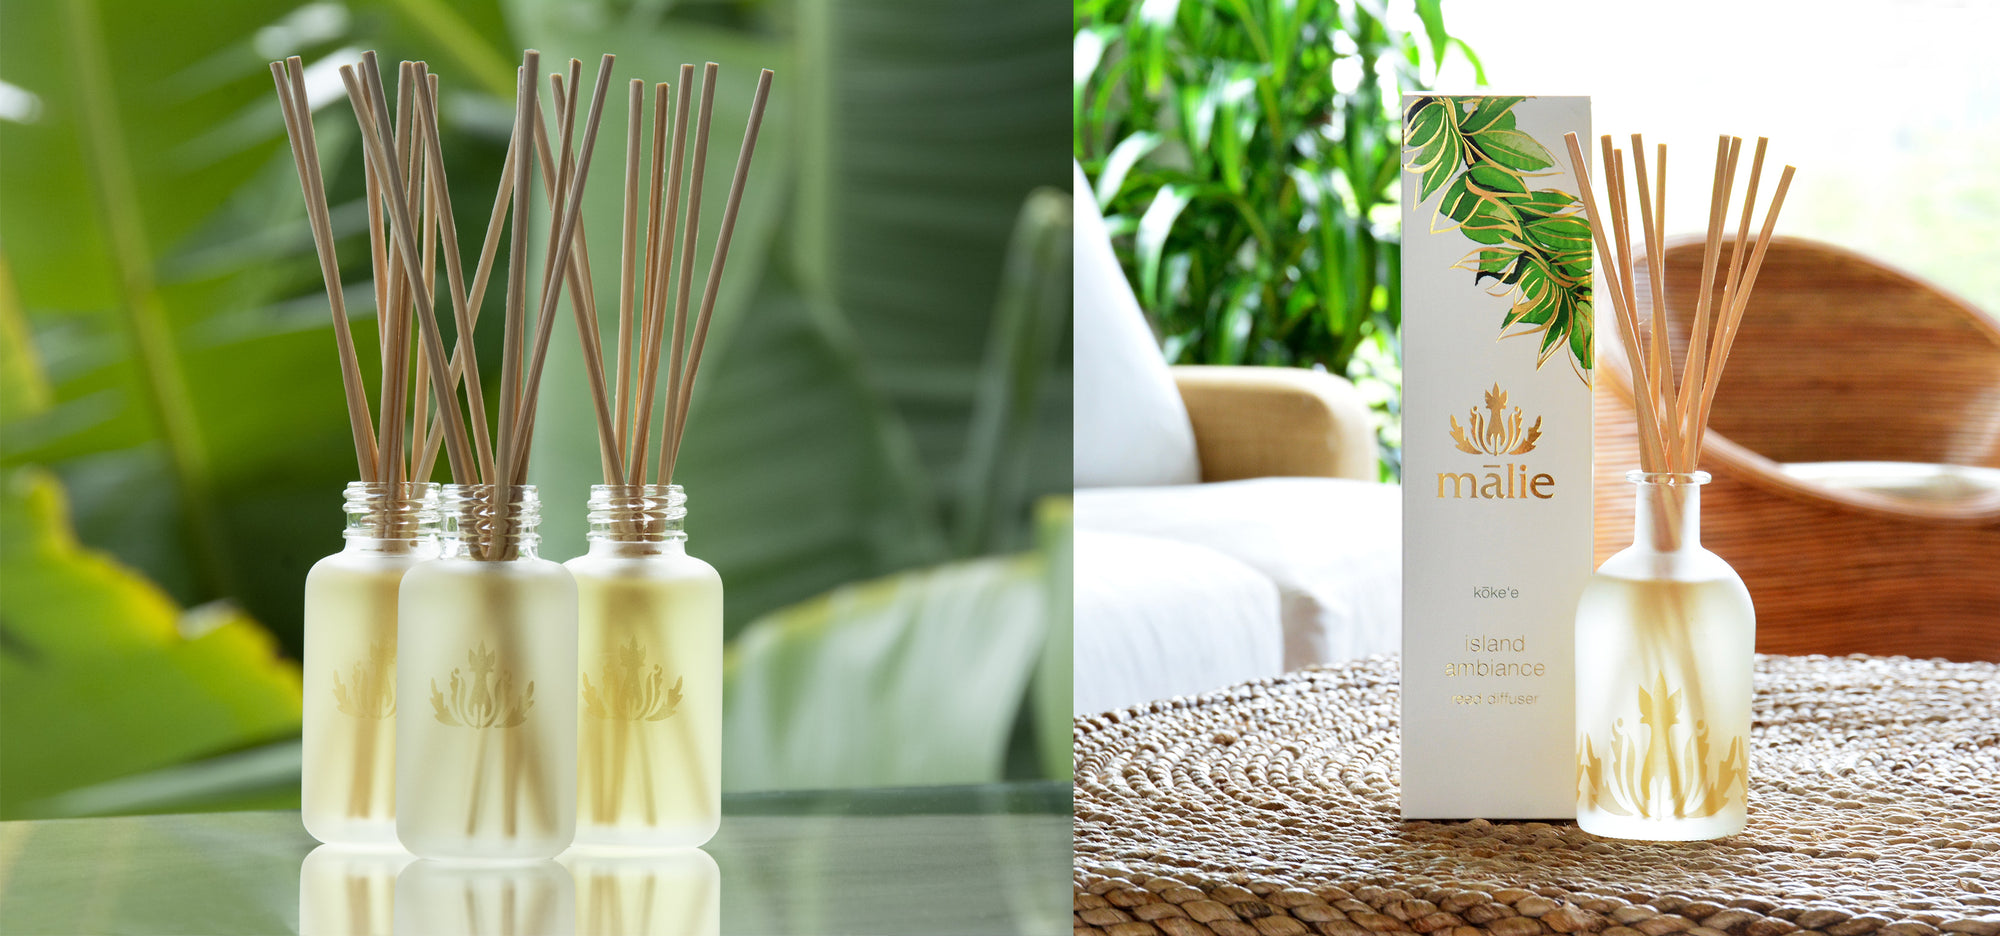 island ambiance reed diffuser